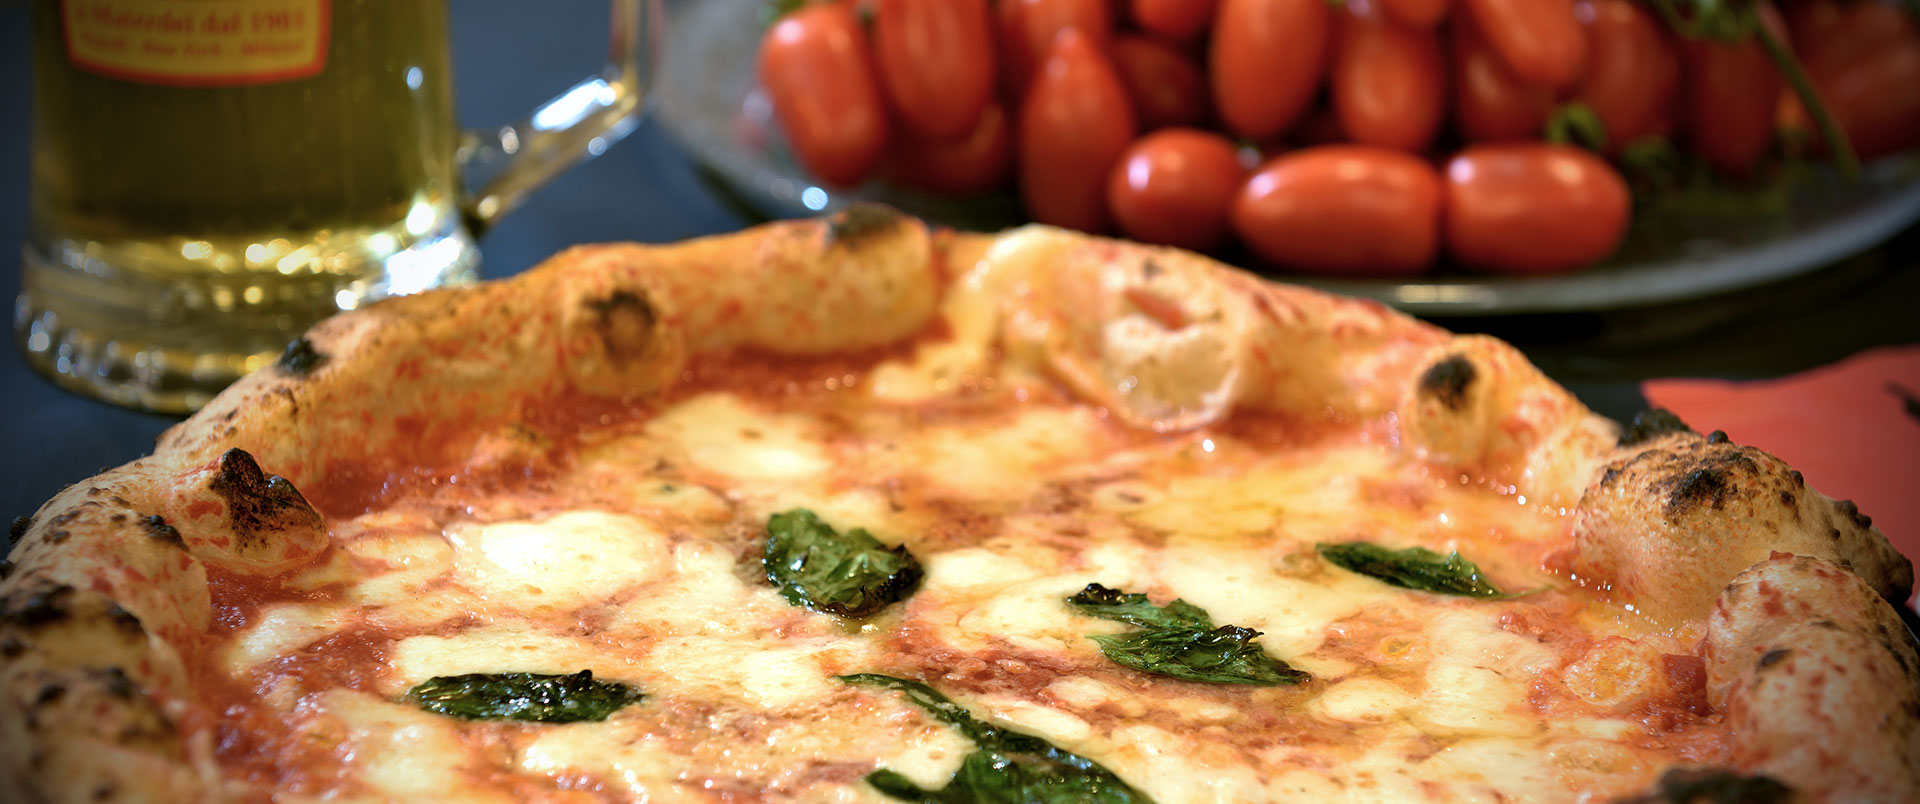 pizzeria-starita-slideshow-